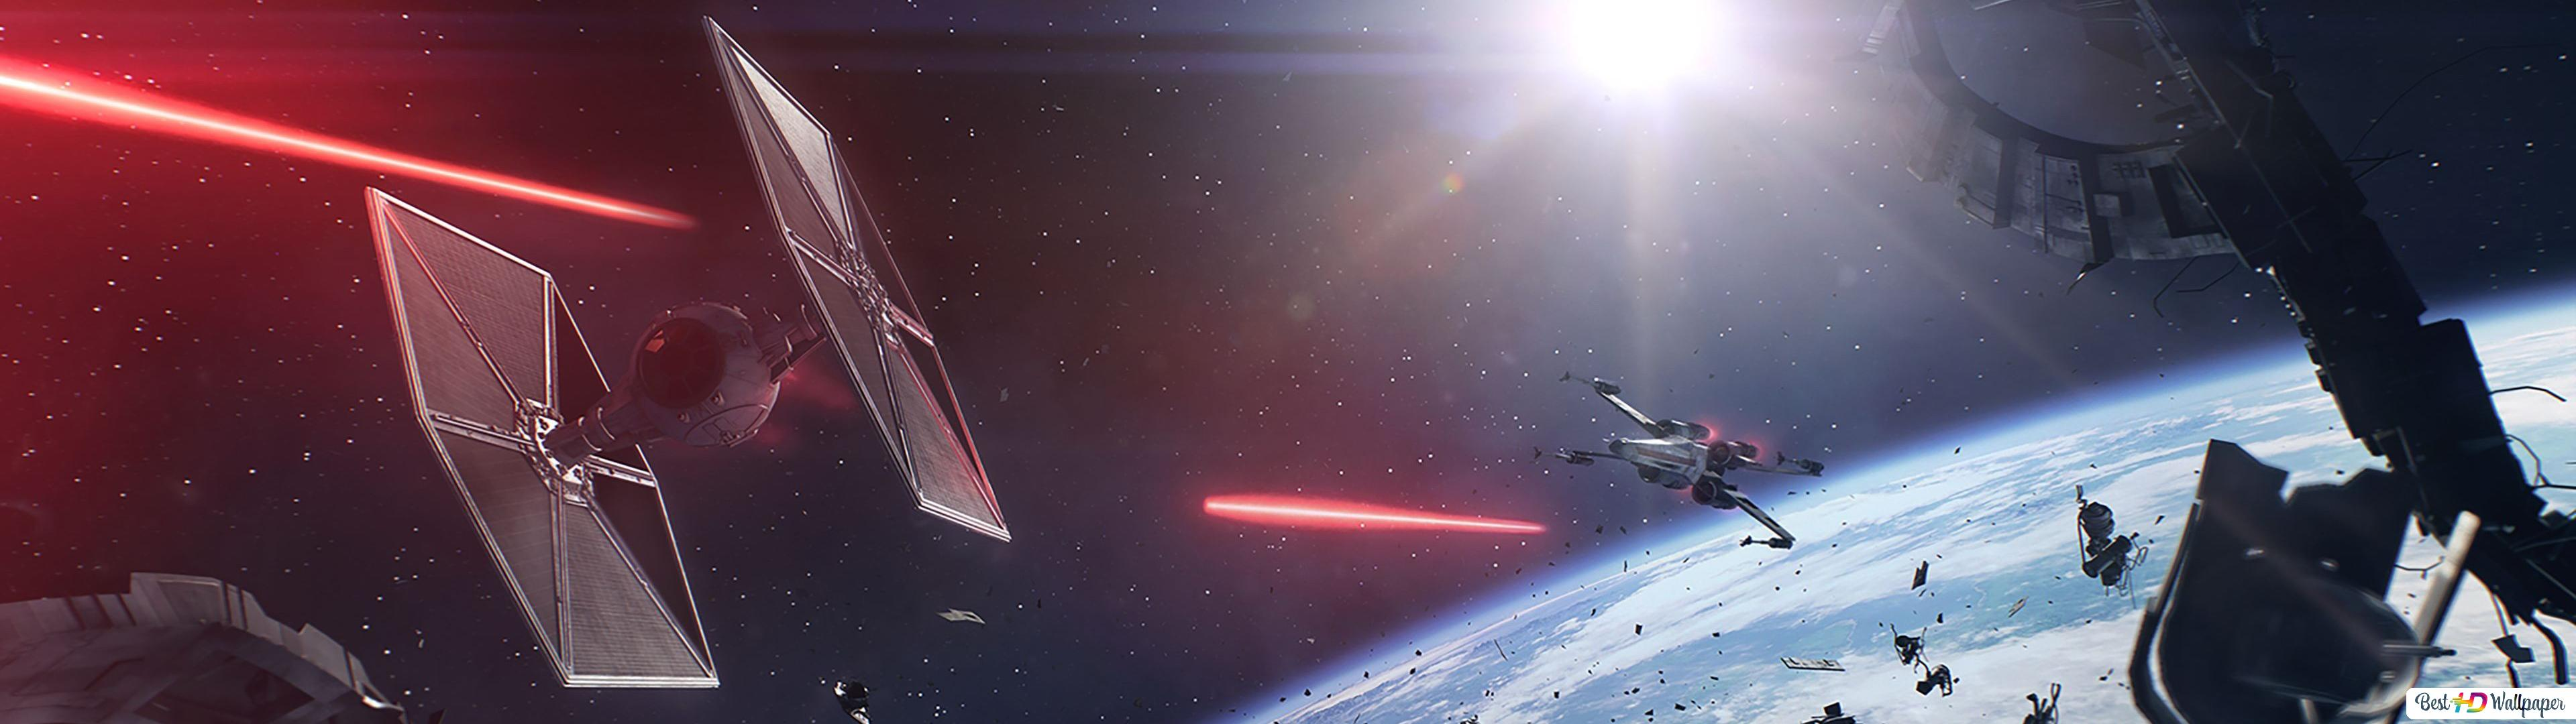 Star Wars Battlefront 2 Game Starship In Space Hd Wallpaper Download